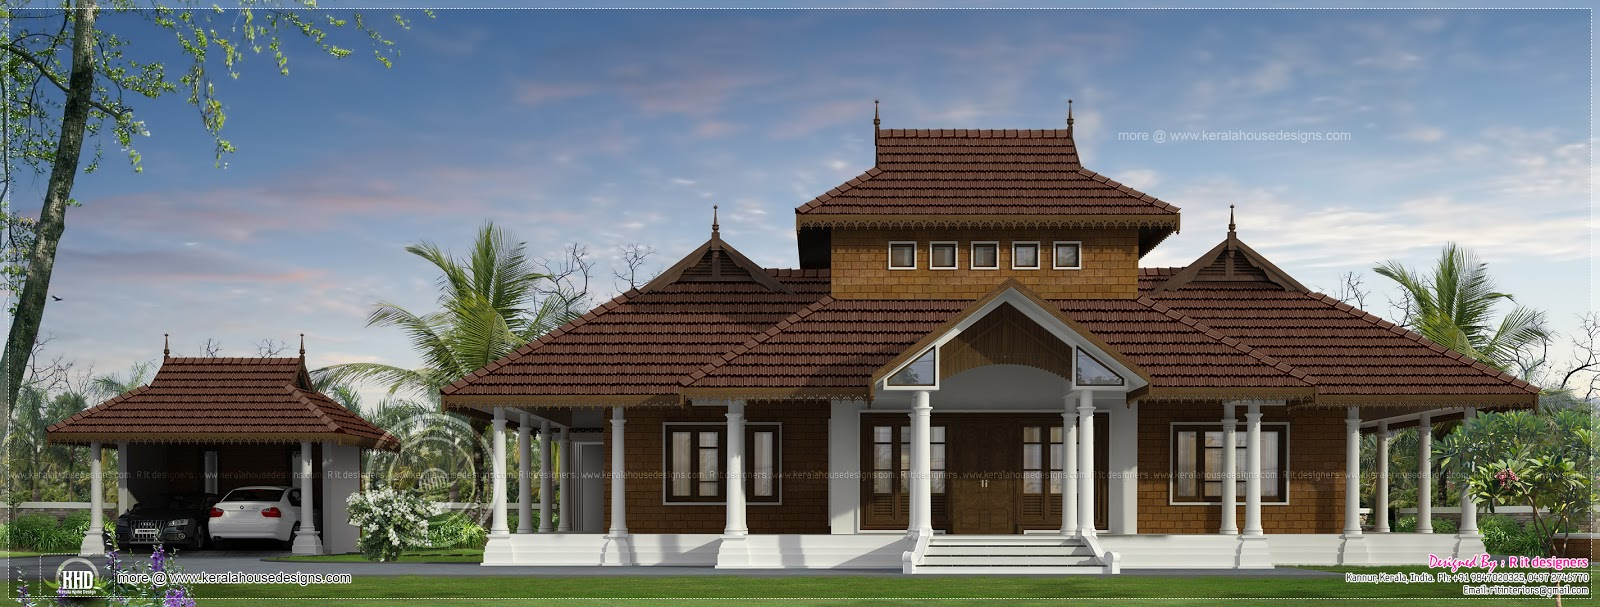 Traditional kerala villa exterior in 3070 sq ft home for Kerala traditional home plans with photos